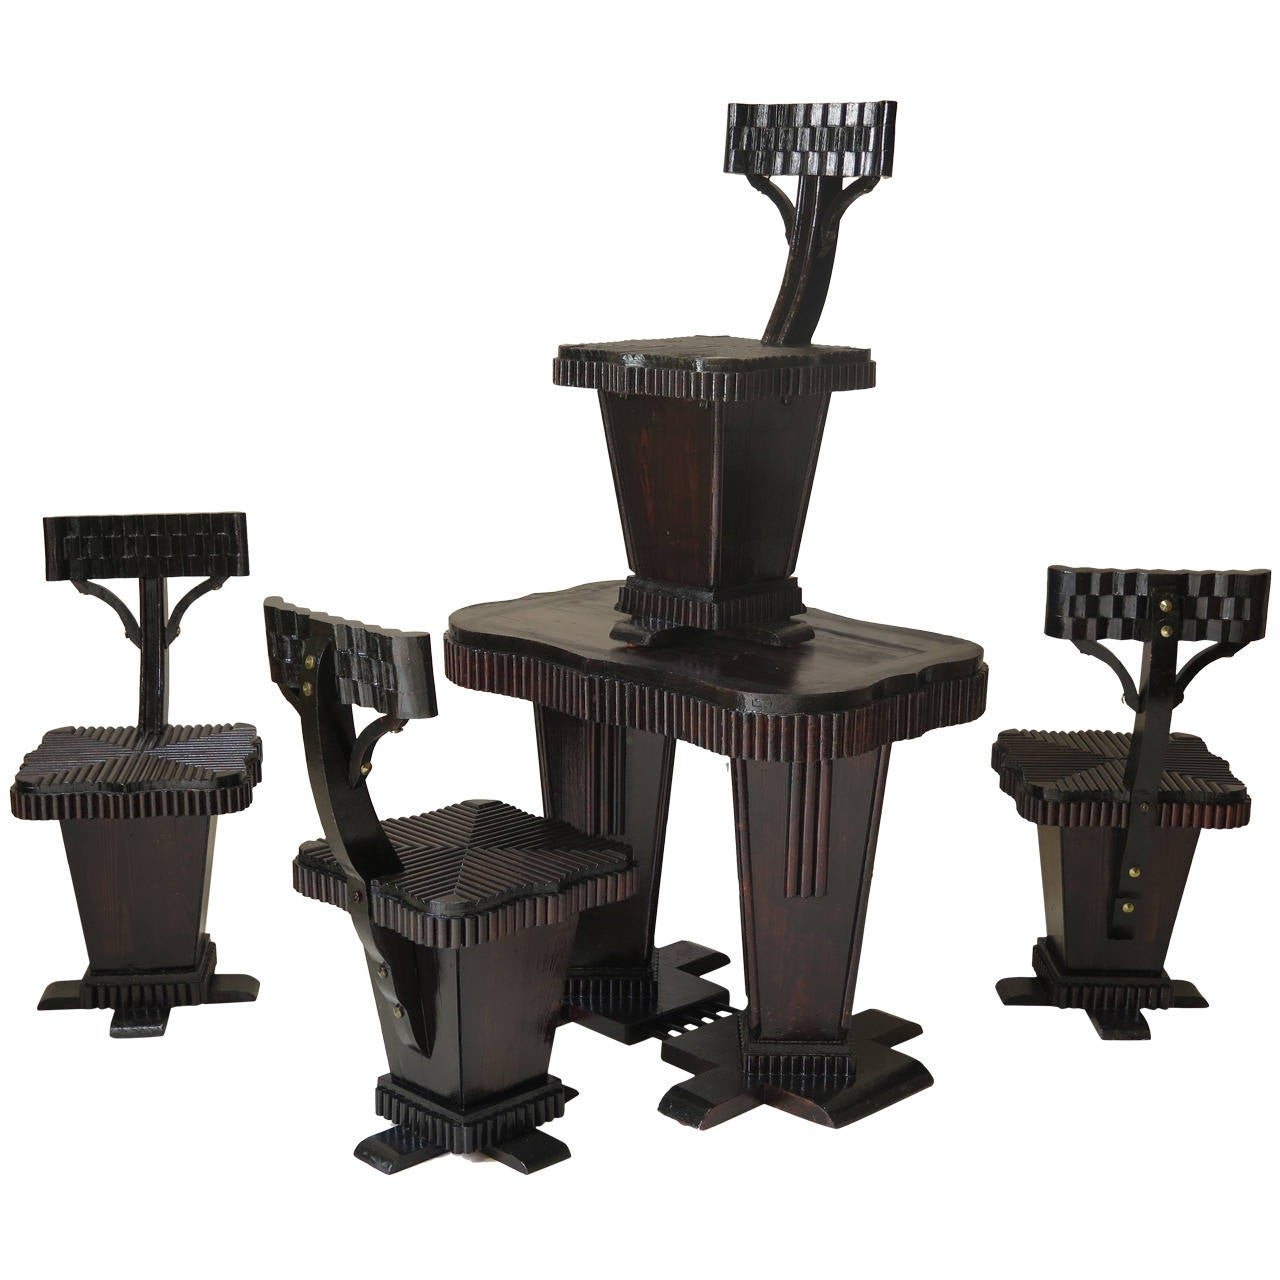 Unusual Art Deco Table and Chair Set, France, 1930s 1